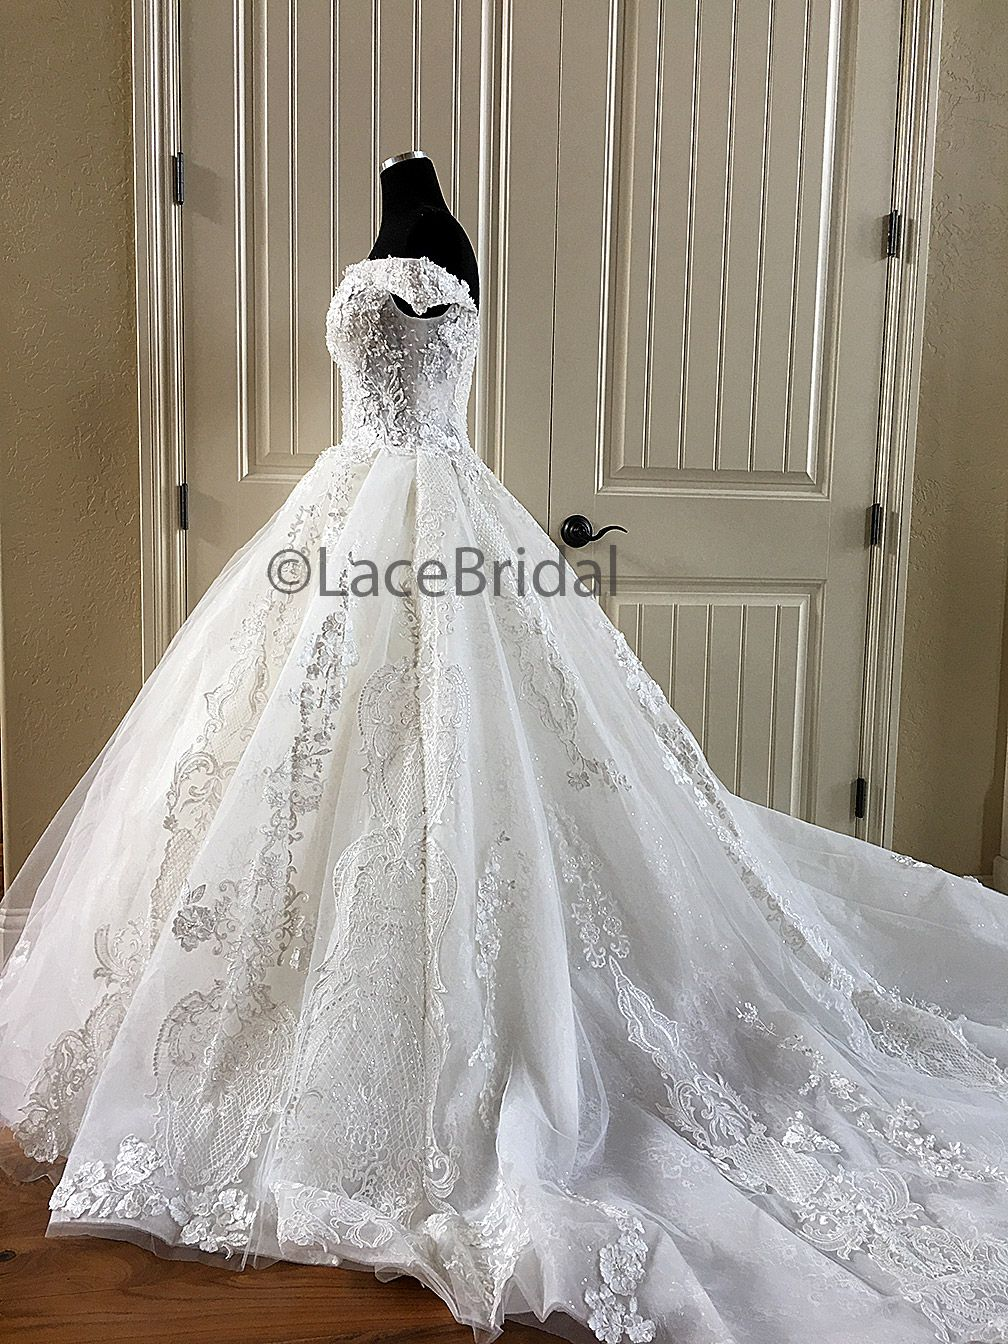 Naviblue Royal Collection Nb015 Eu Size 38 Available For Sale Please Contact Us For Purchase And Appointment Www Lace Bridal Lace Wedding Dresses Bridal Stores